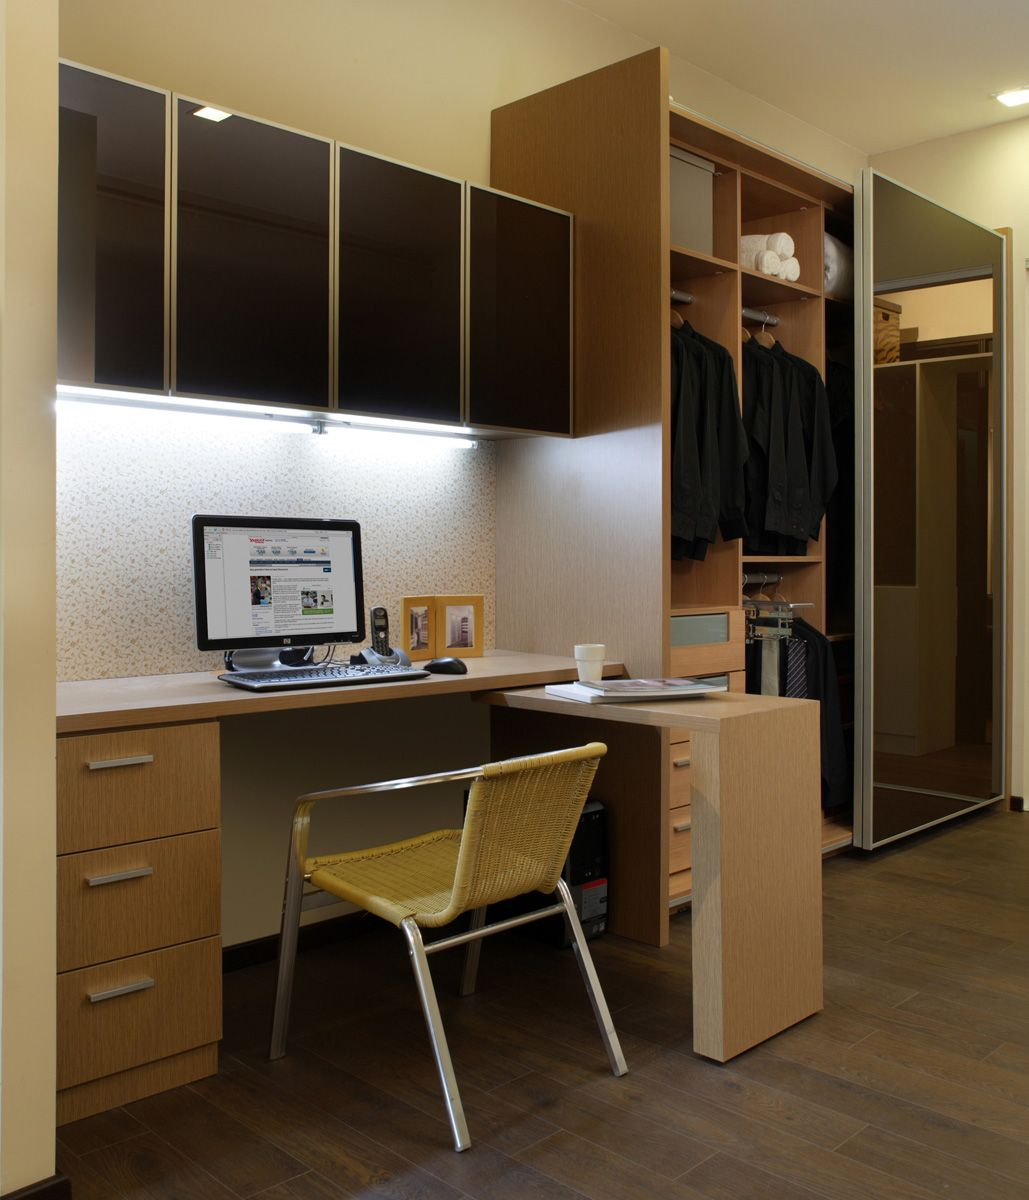 Study Room Furniture Ideas: Study Table With Wall Cabinet & Wardrobe